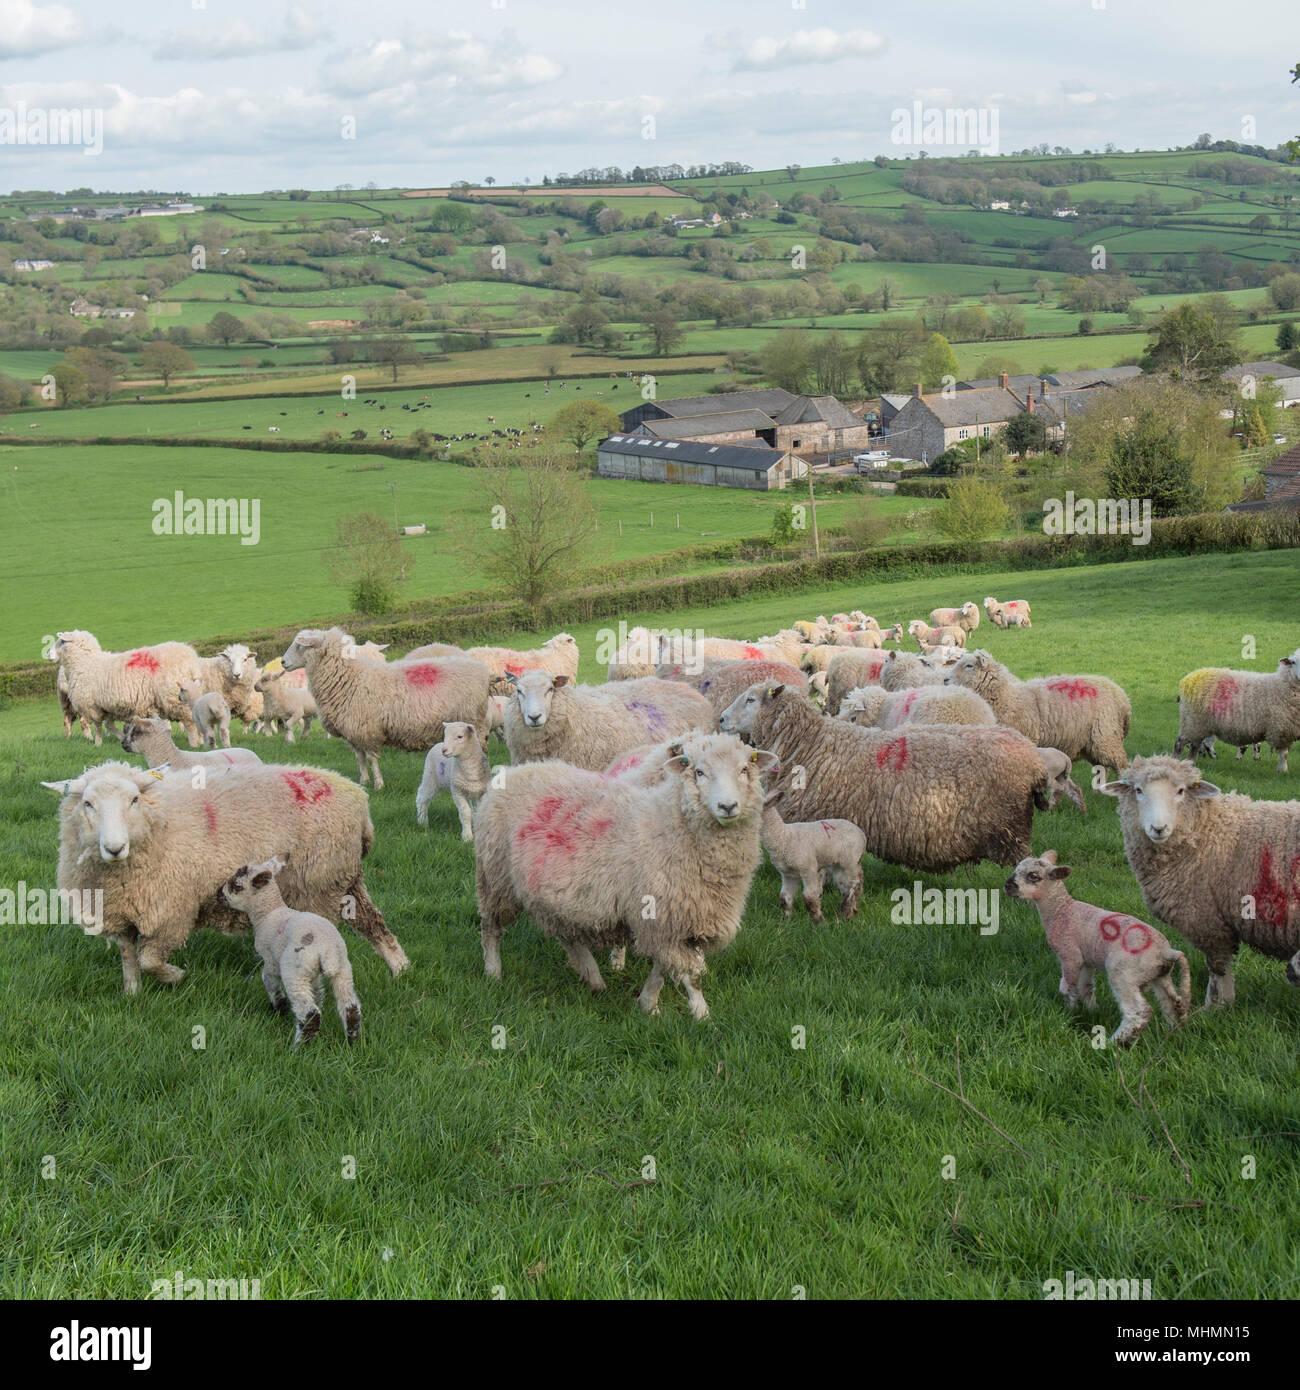 ewes and lambs in a sheep flock - Stock Image